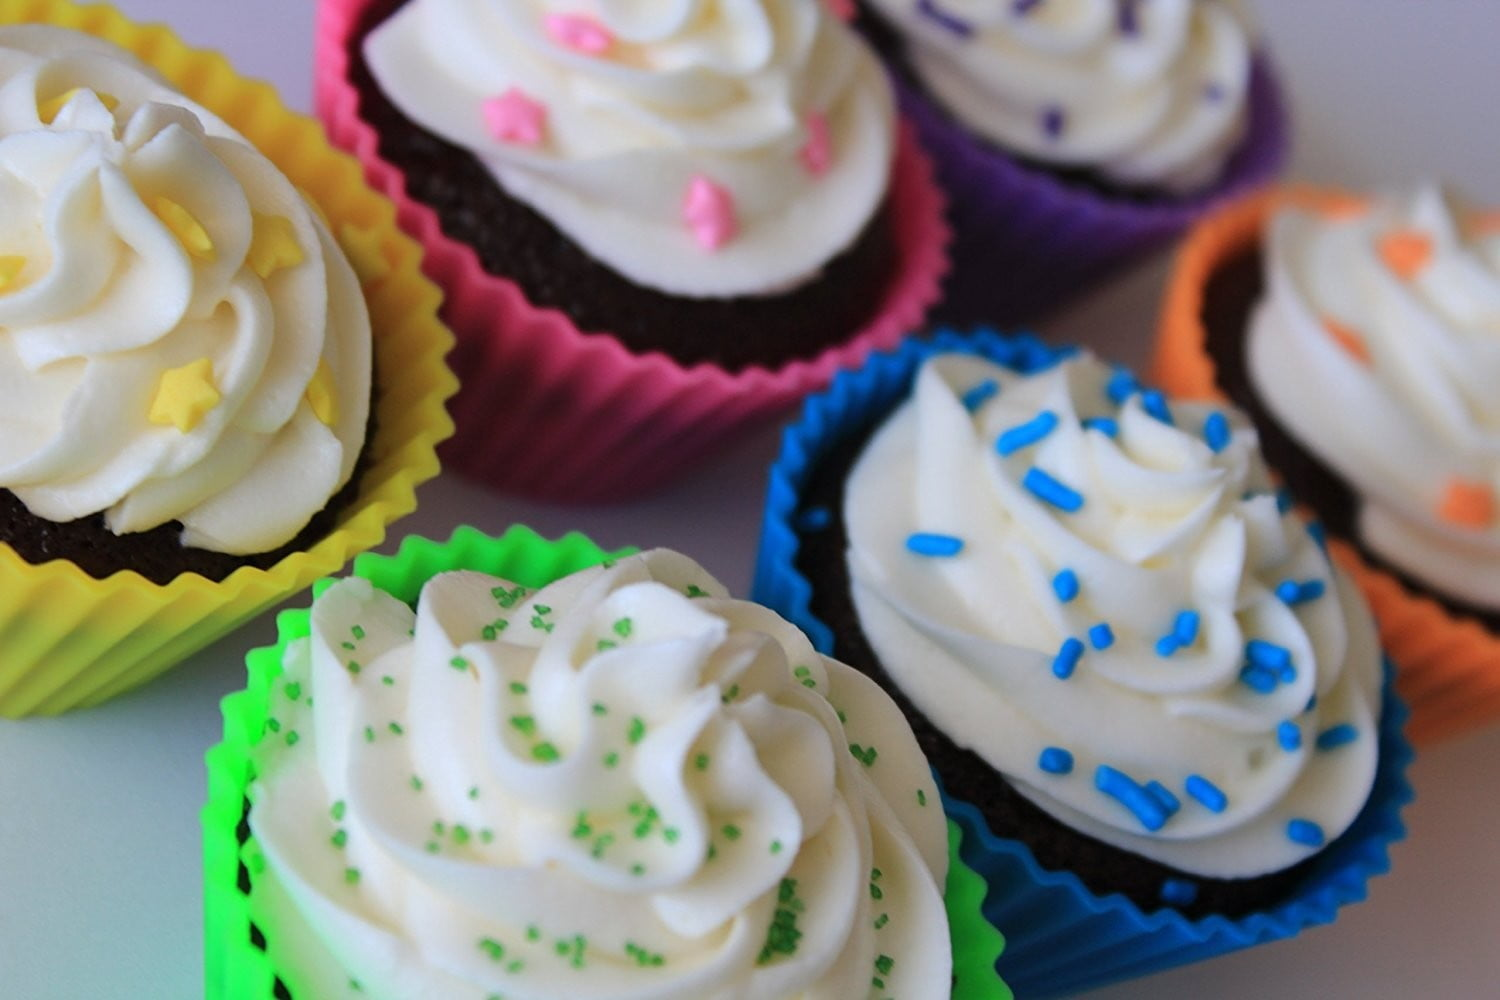 pantry-elements-silicone-cupcake-liners-baking-cups-with cupcakes in them